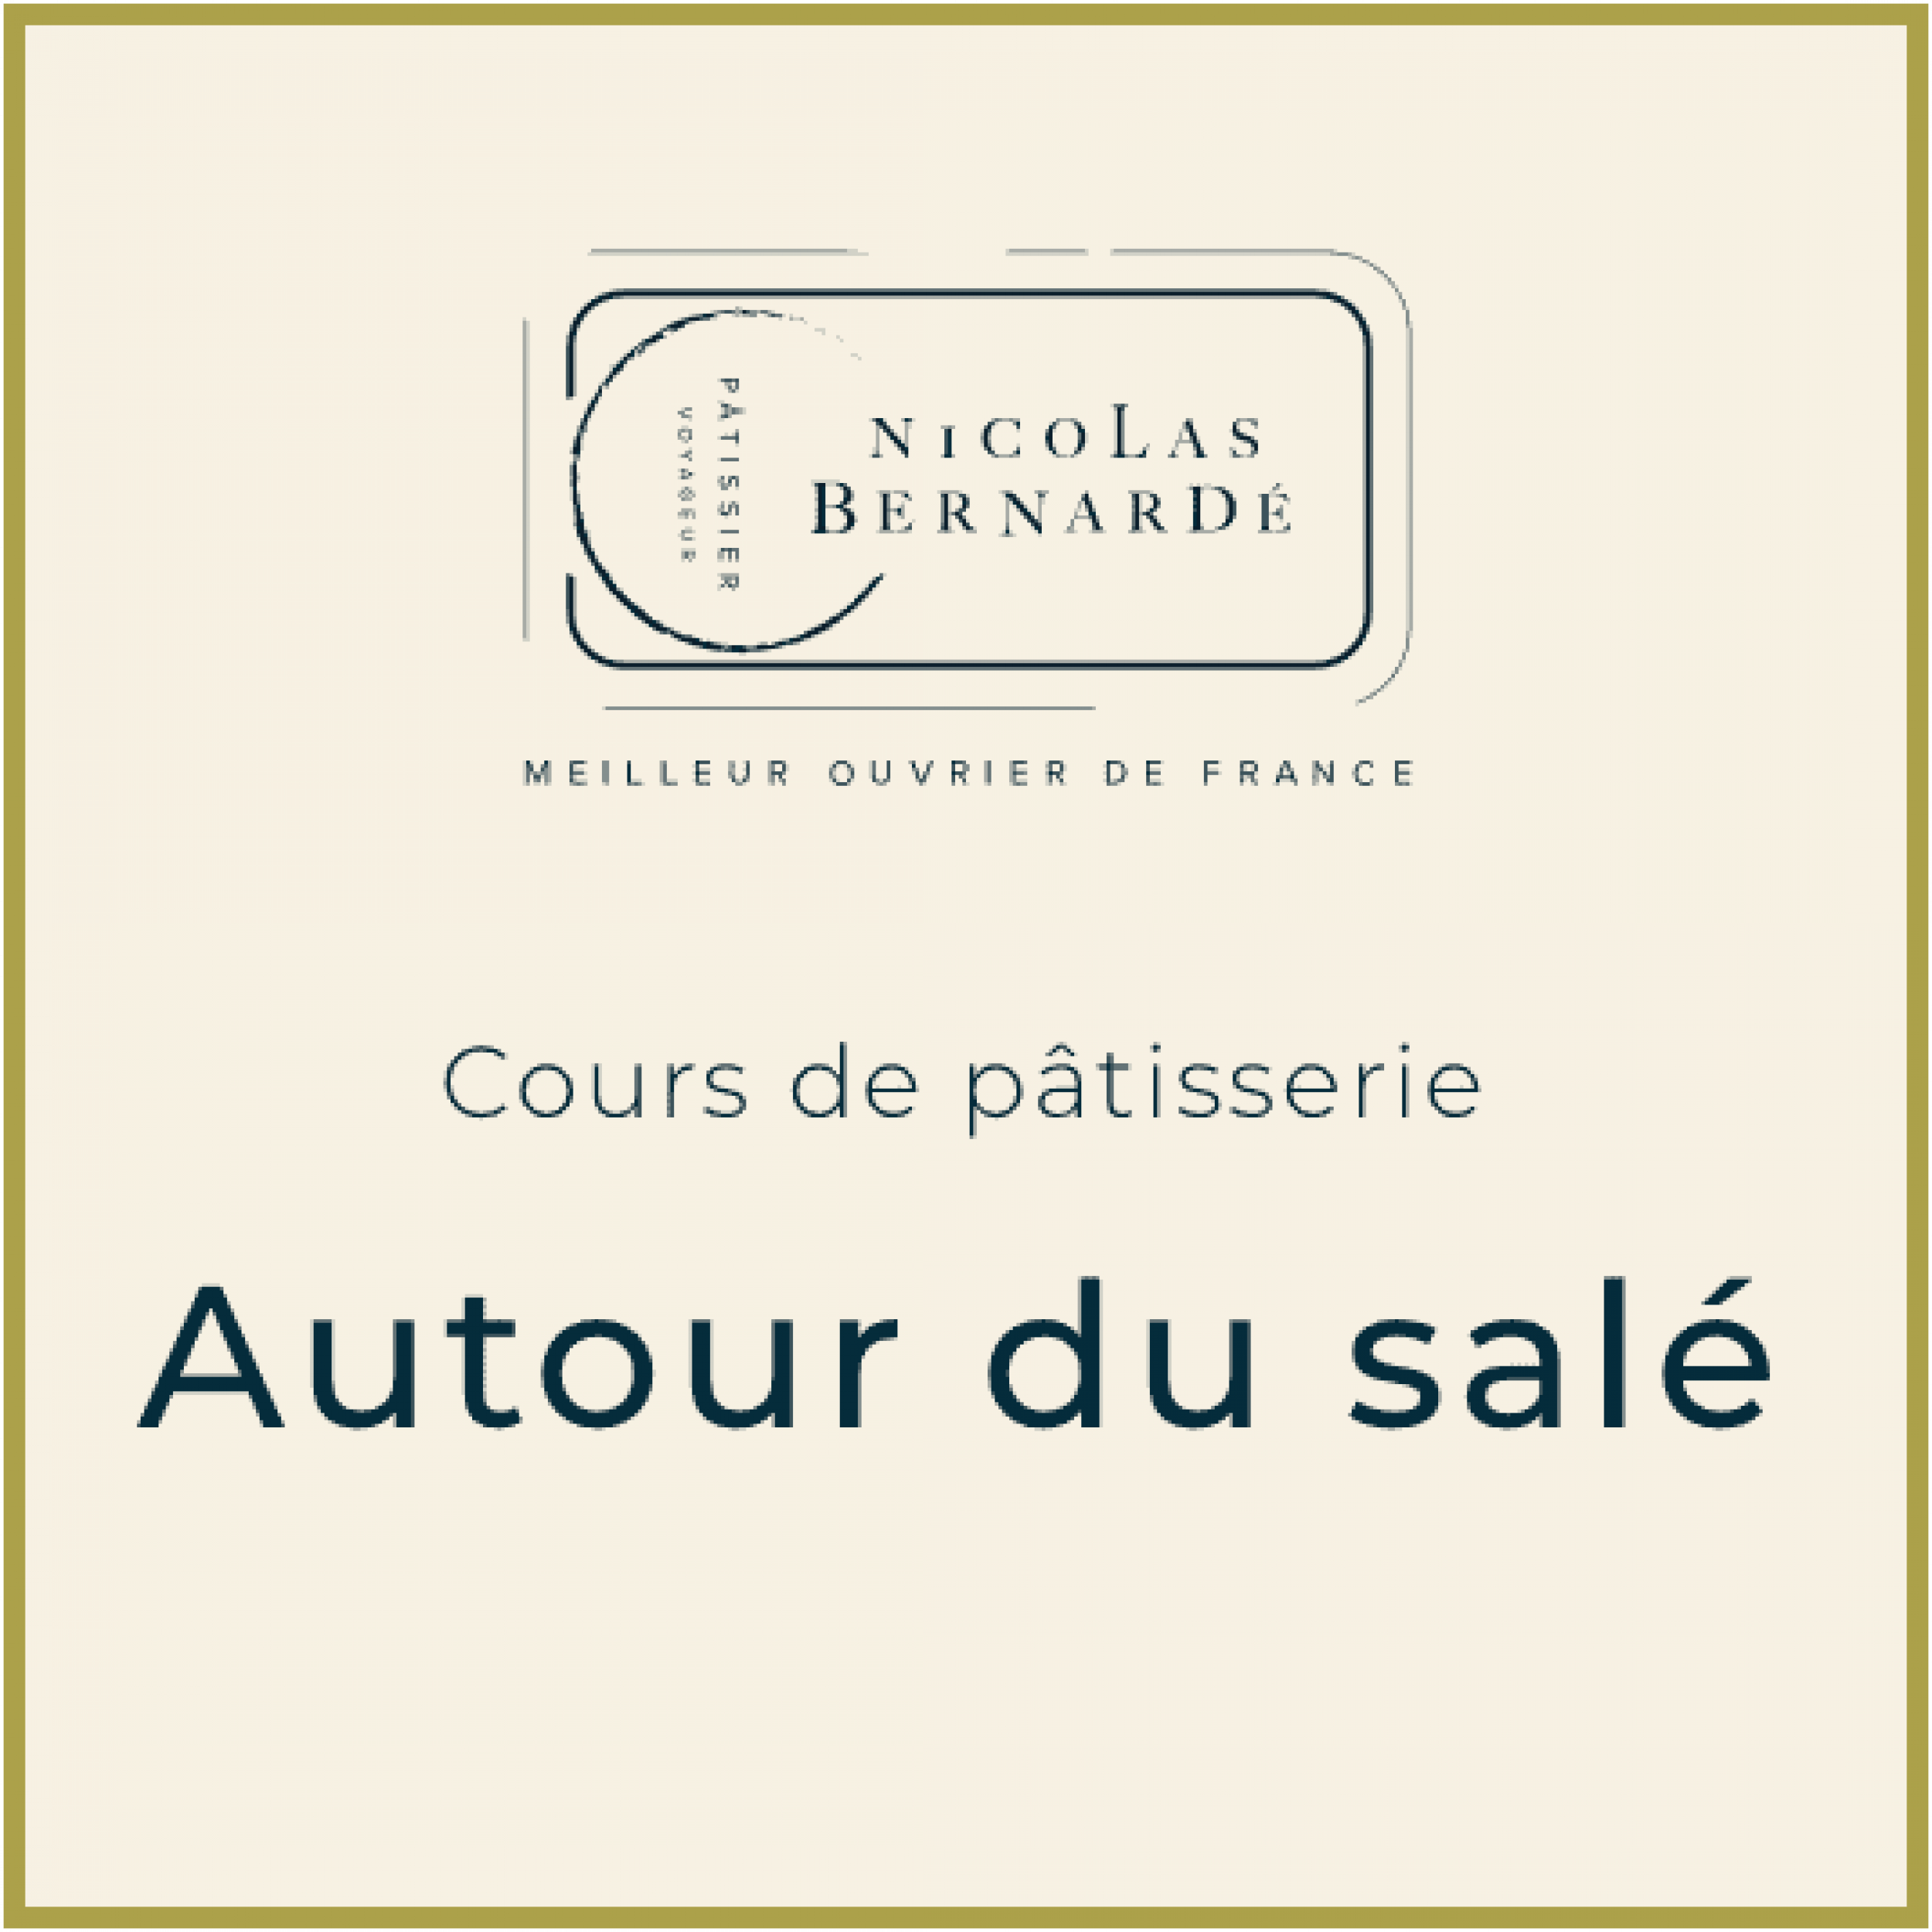 CoursCuisine Sale